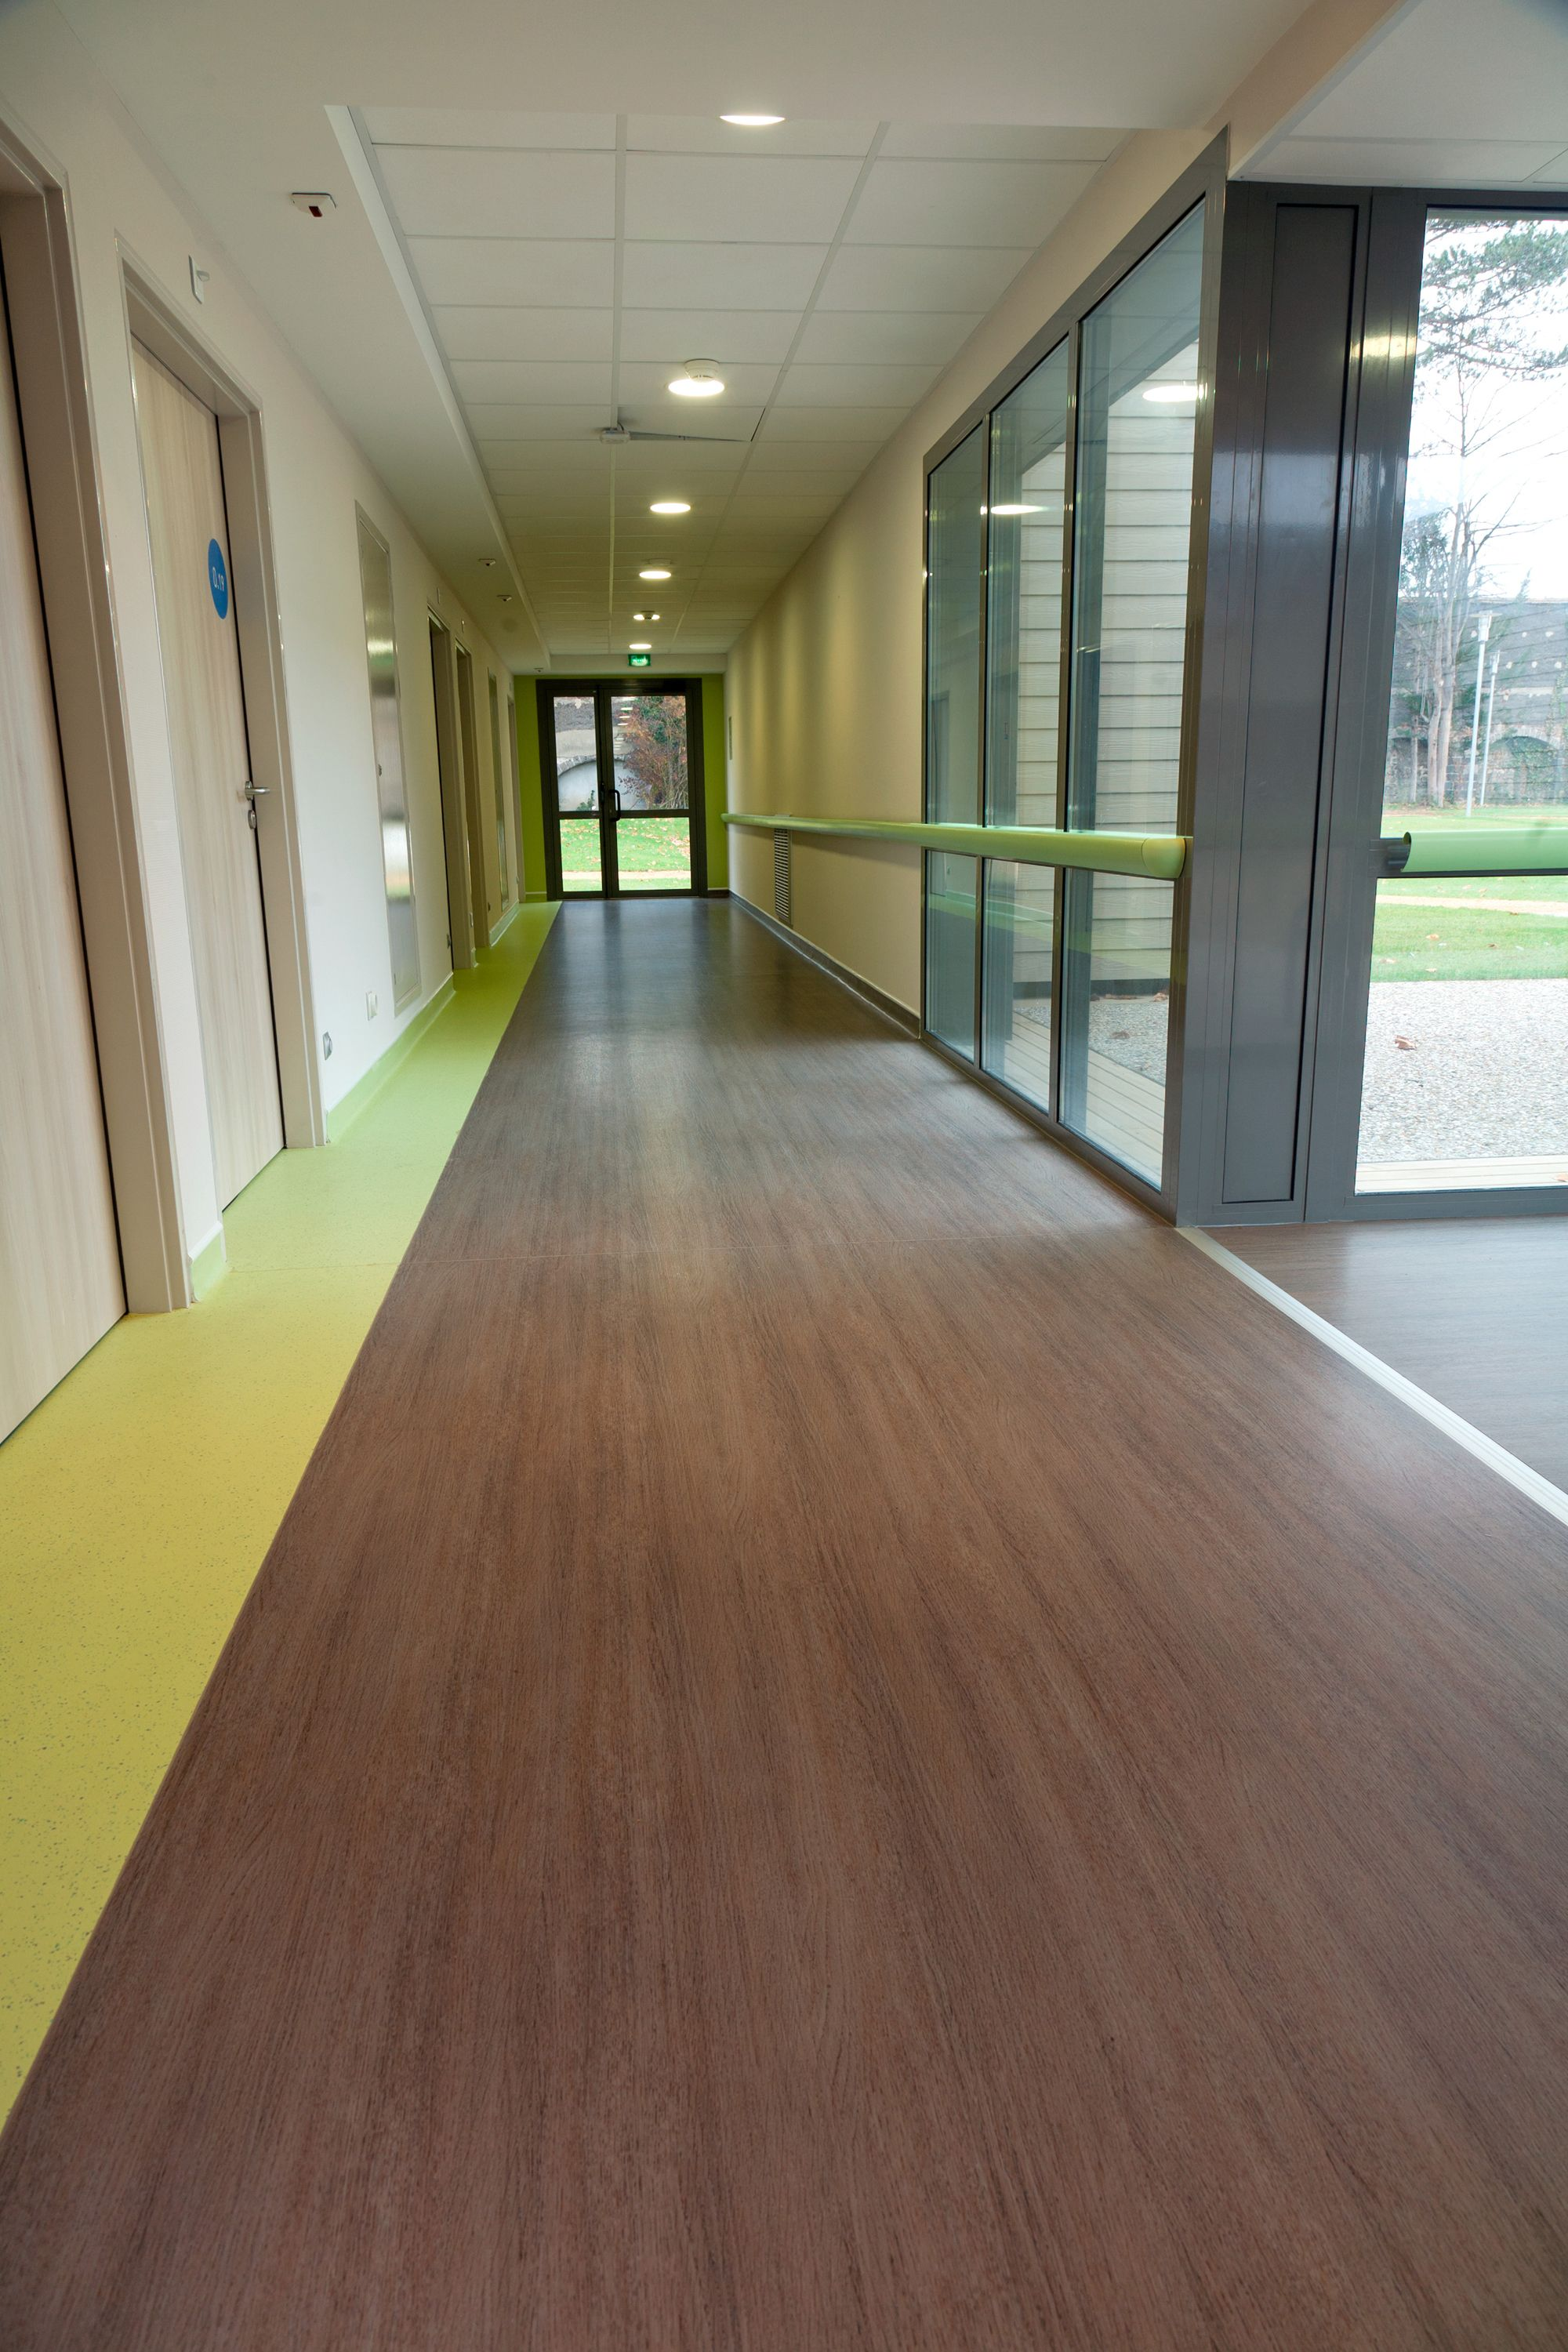 Taralay Premium Vinyl Flooring Is A High Performance Solution For Heavy Traffic Areas In Education Office Healthcare Retirement Home Cinema